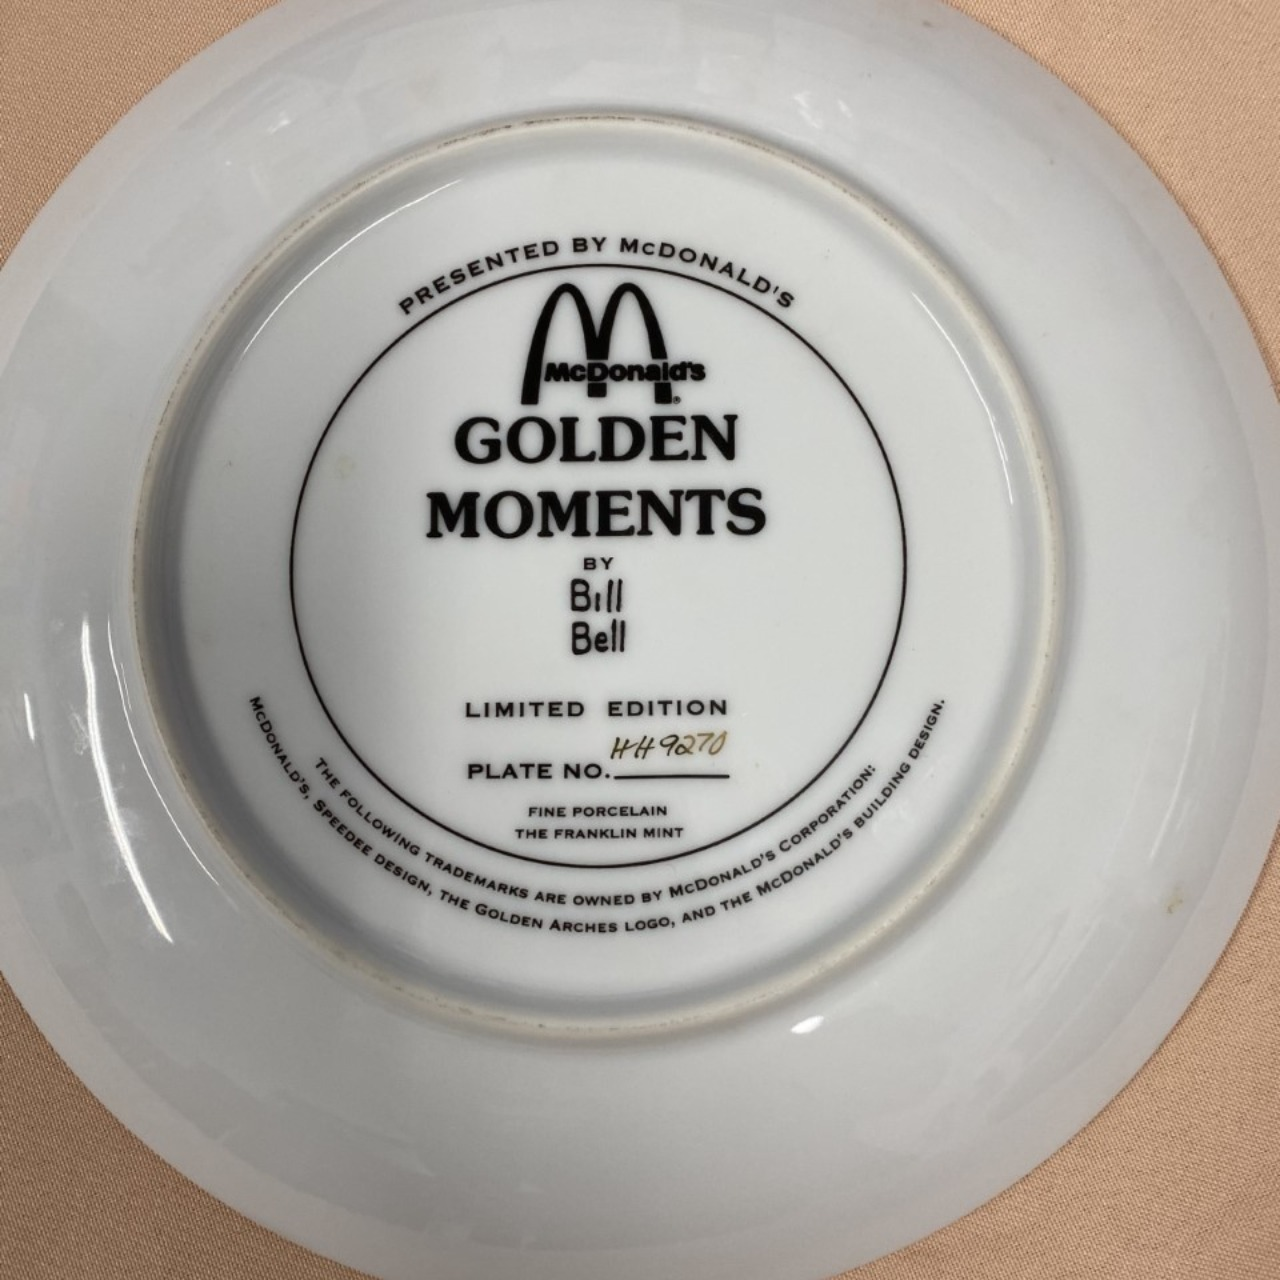 Mcdonald's Golden Moments Limited Edition Plate